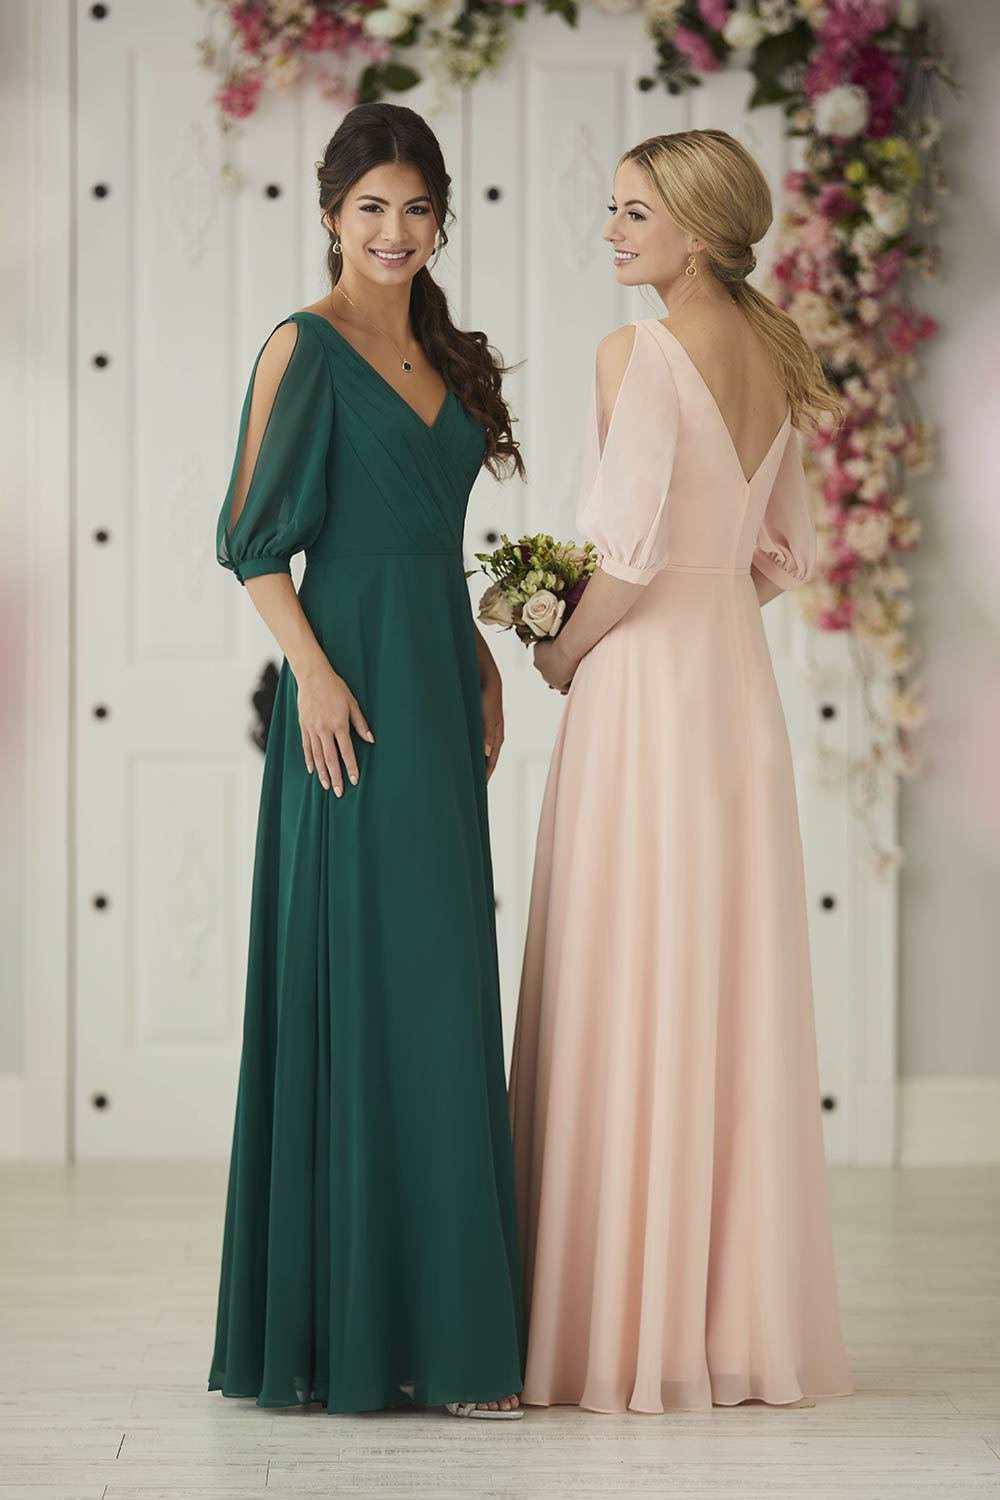 bridesmaid-dresses-jacquelin-bridals-canada-27286